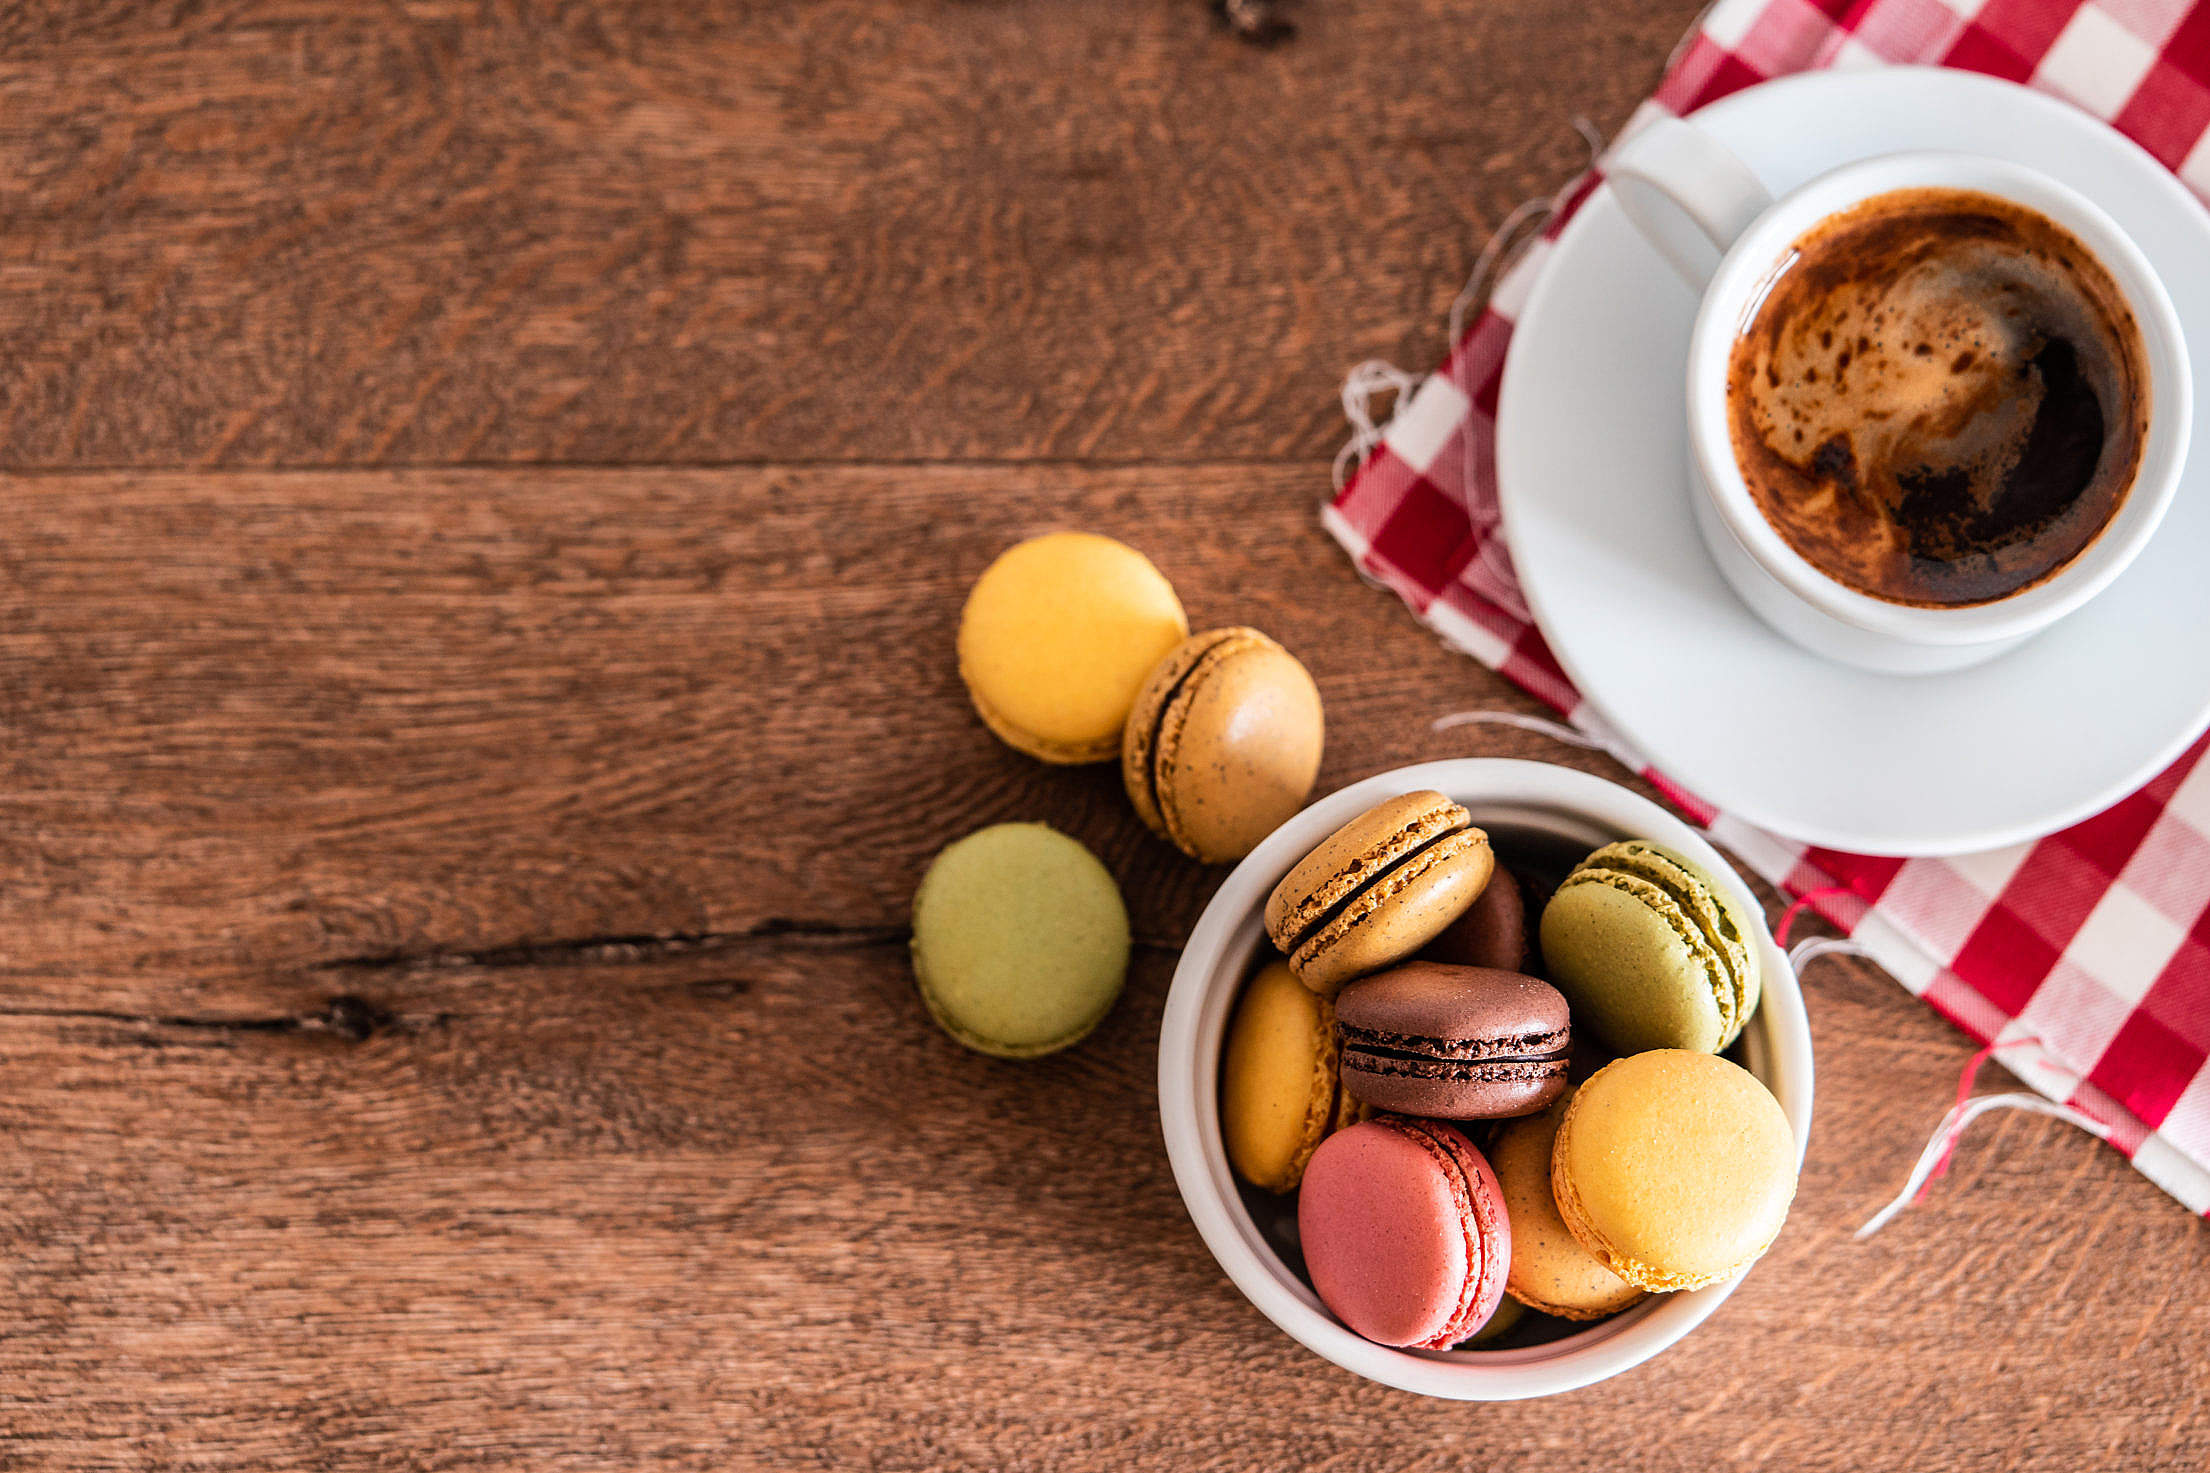 Homemade Macarons with a Cup of Coffee Free Stock Photo